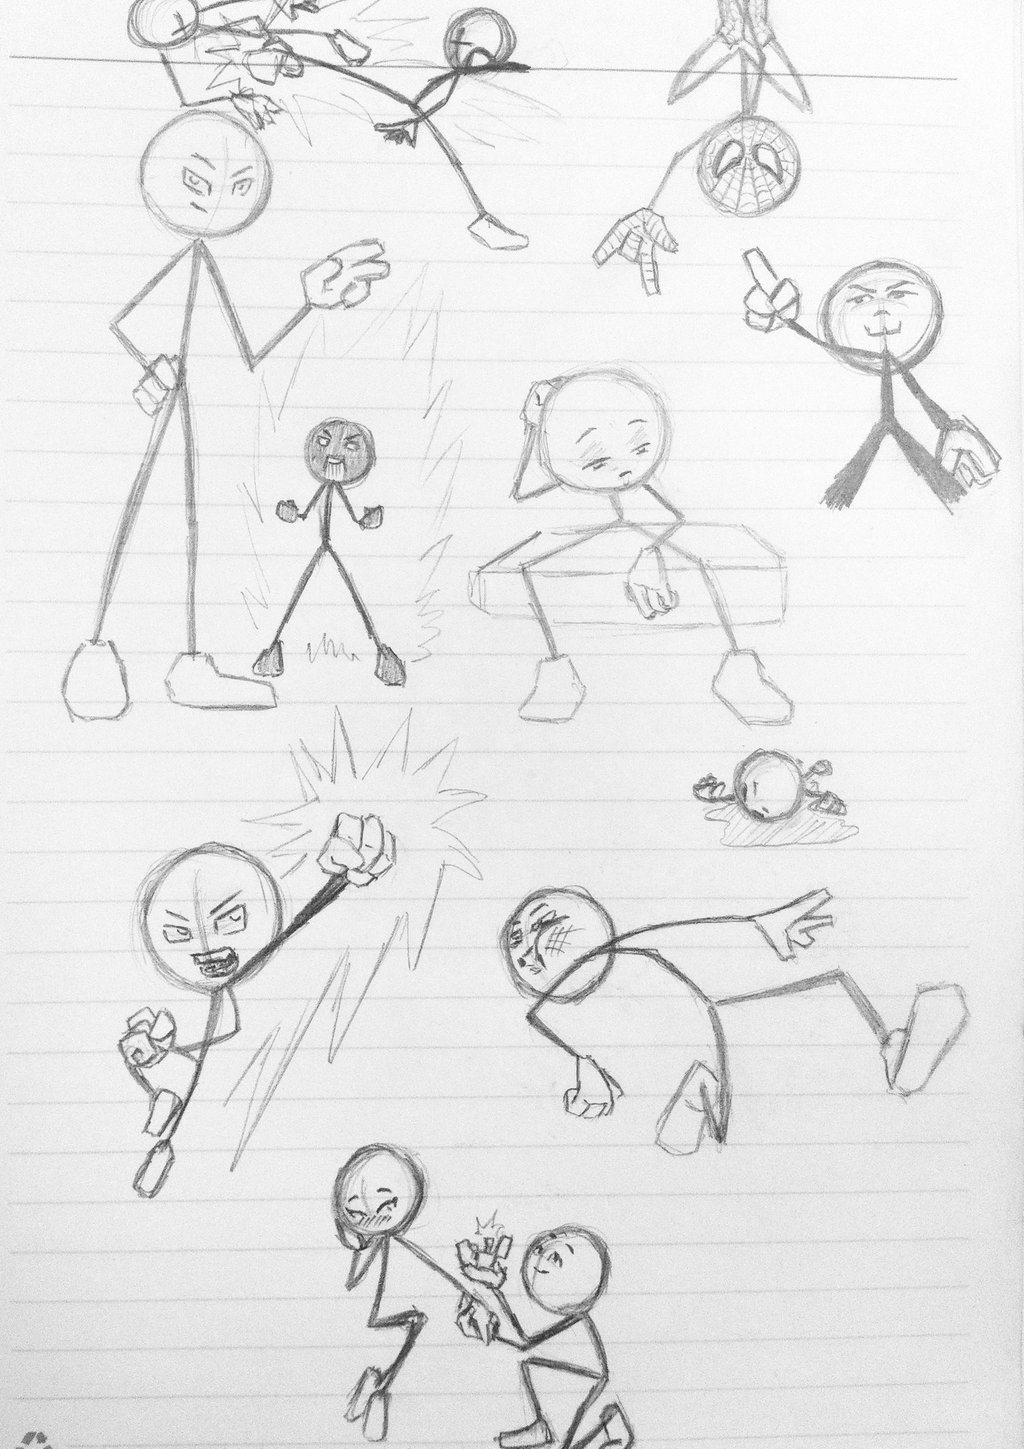 1024x1449 Exploring Dynamic Poses With Stickman By Wulongti